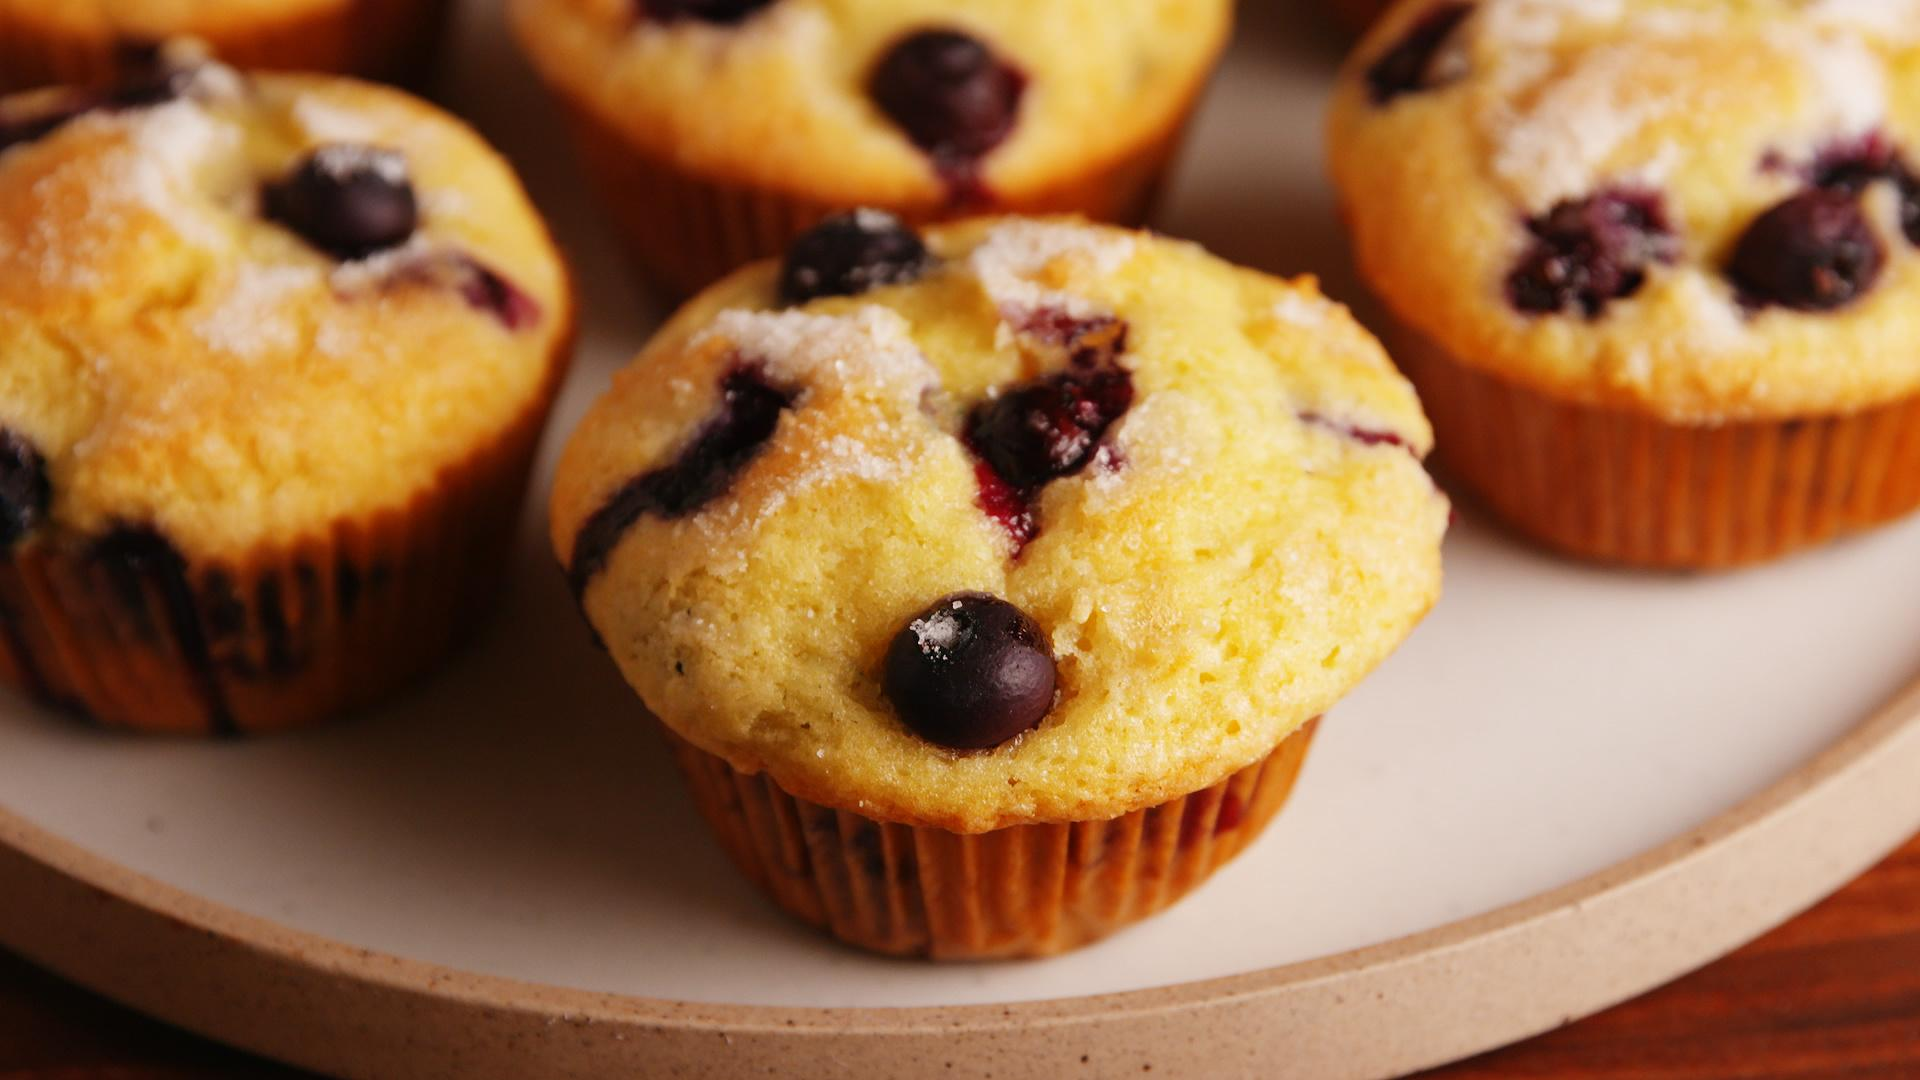 How to Make Classic Blueberry Muffins